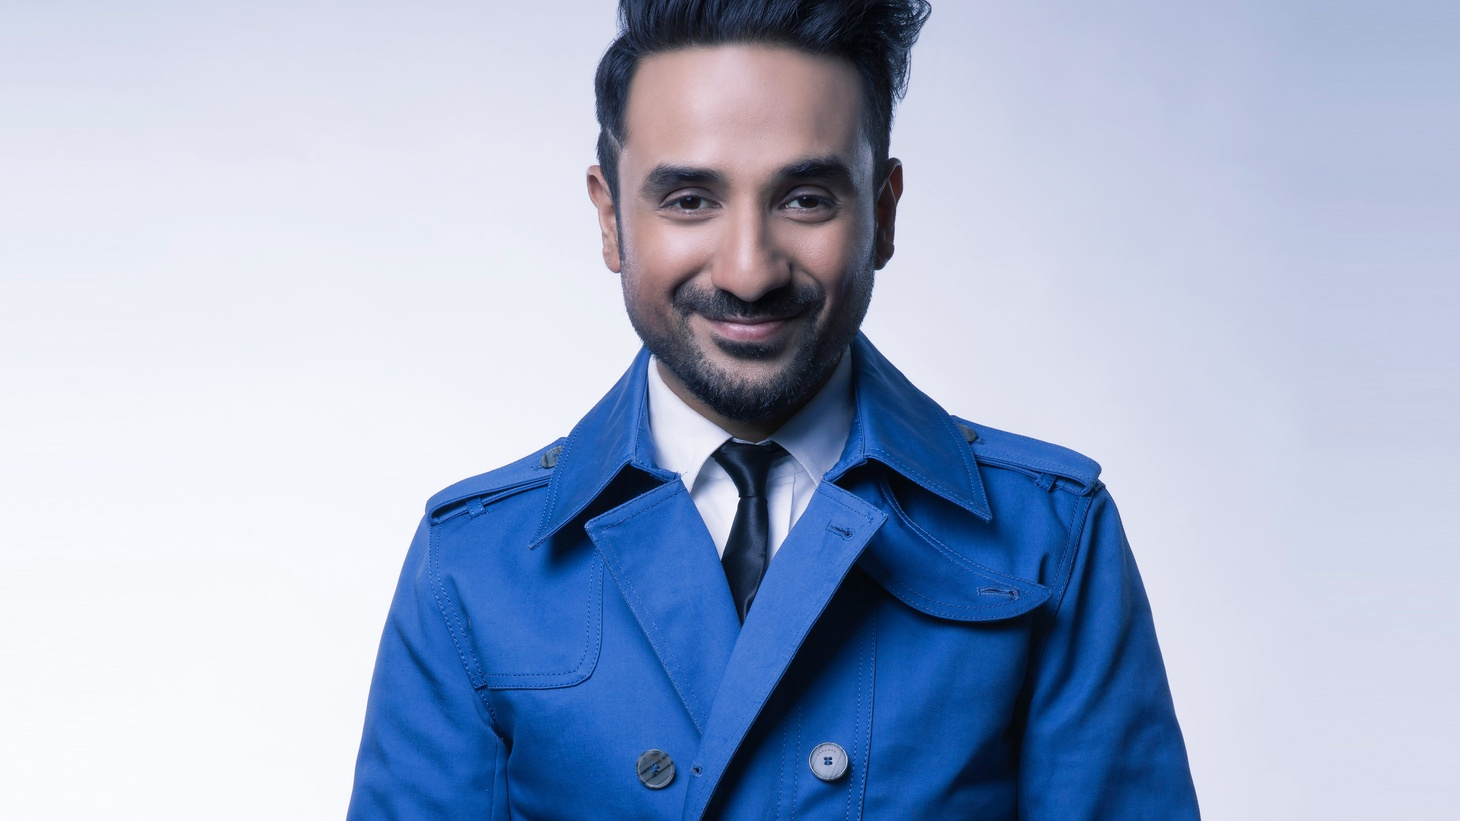 After selling out stadiums in India, comedian and actor Vir Das is looking to break through in the US with his new Netflix special, Vir Das: Abroad Understanding. He tells us about making the jump from Bollywood to Hollywood and how he hopes his pointed humor can redefine expectations in India and America.